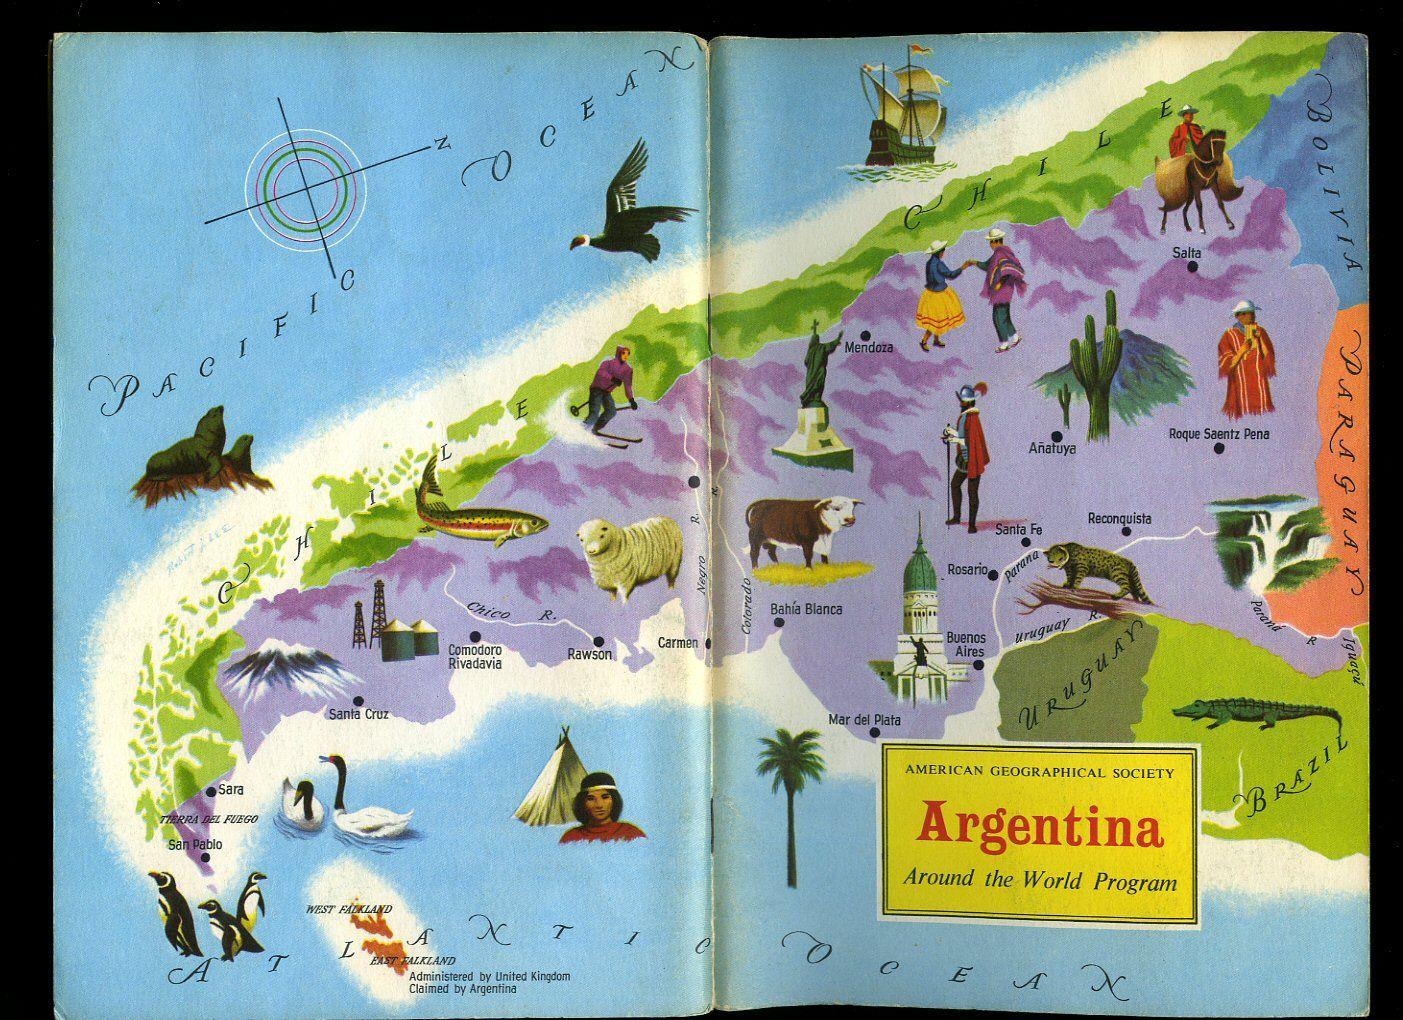 Argentina american geographical society around the world program argentina american geographical society around the world program vintage map book cover maps american geographical society around the world program gumiabroncs Image collections